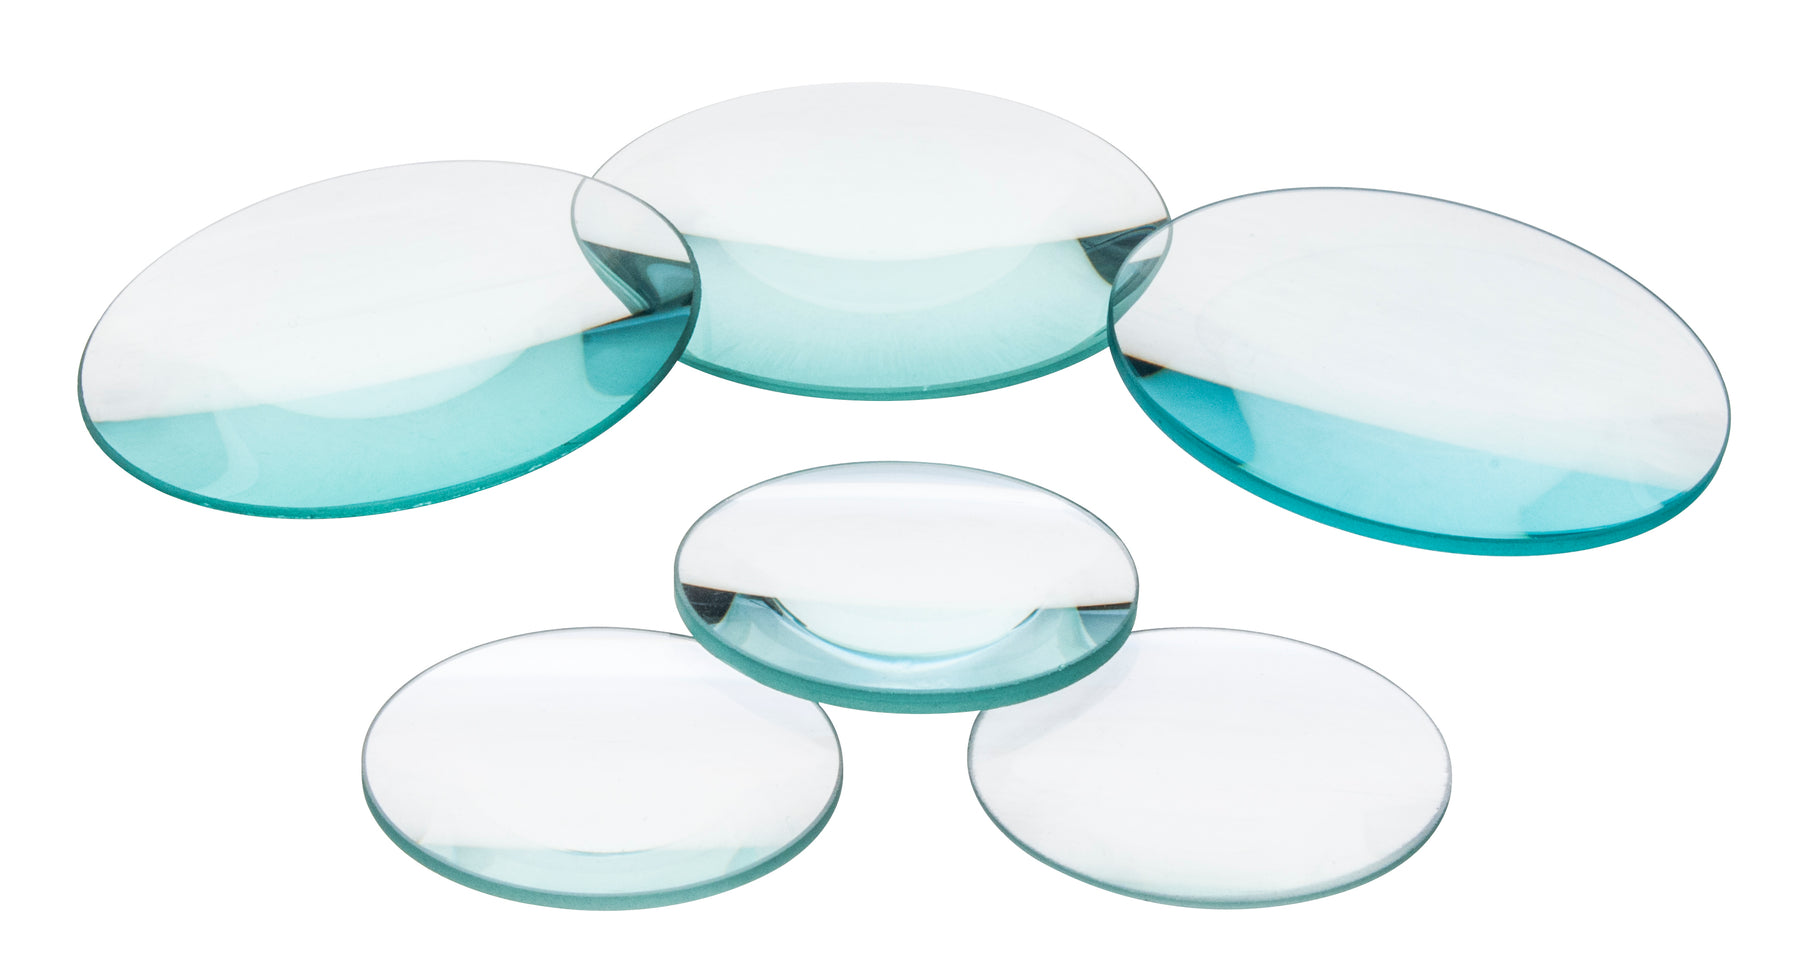 Glass Lenses - Double Convex & Concave, Dia - 38 mm, F.L. - 1000 mm